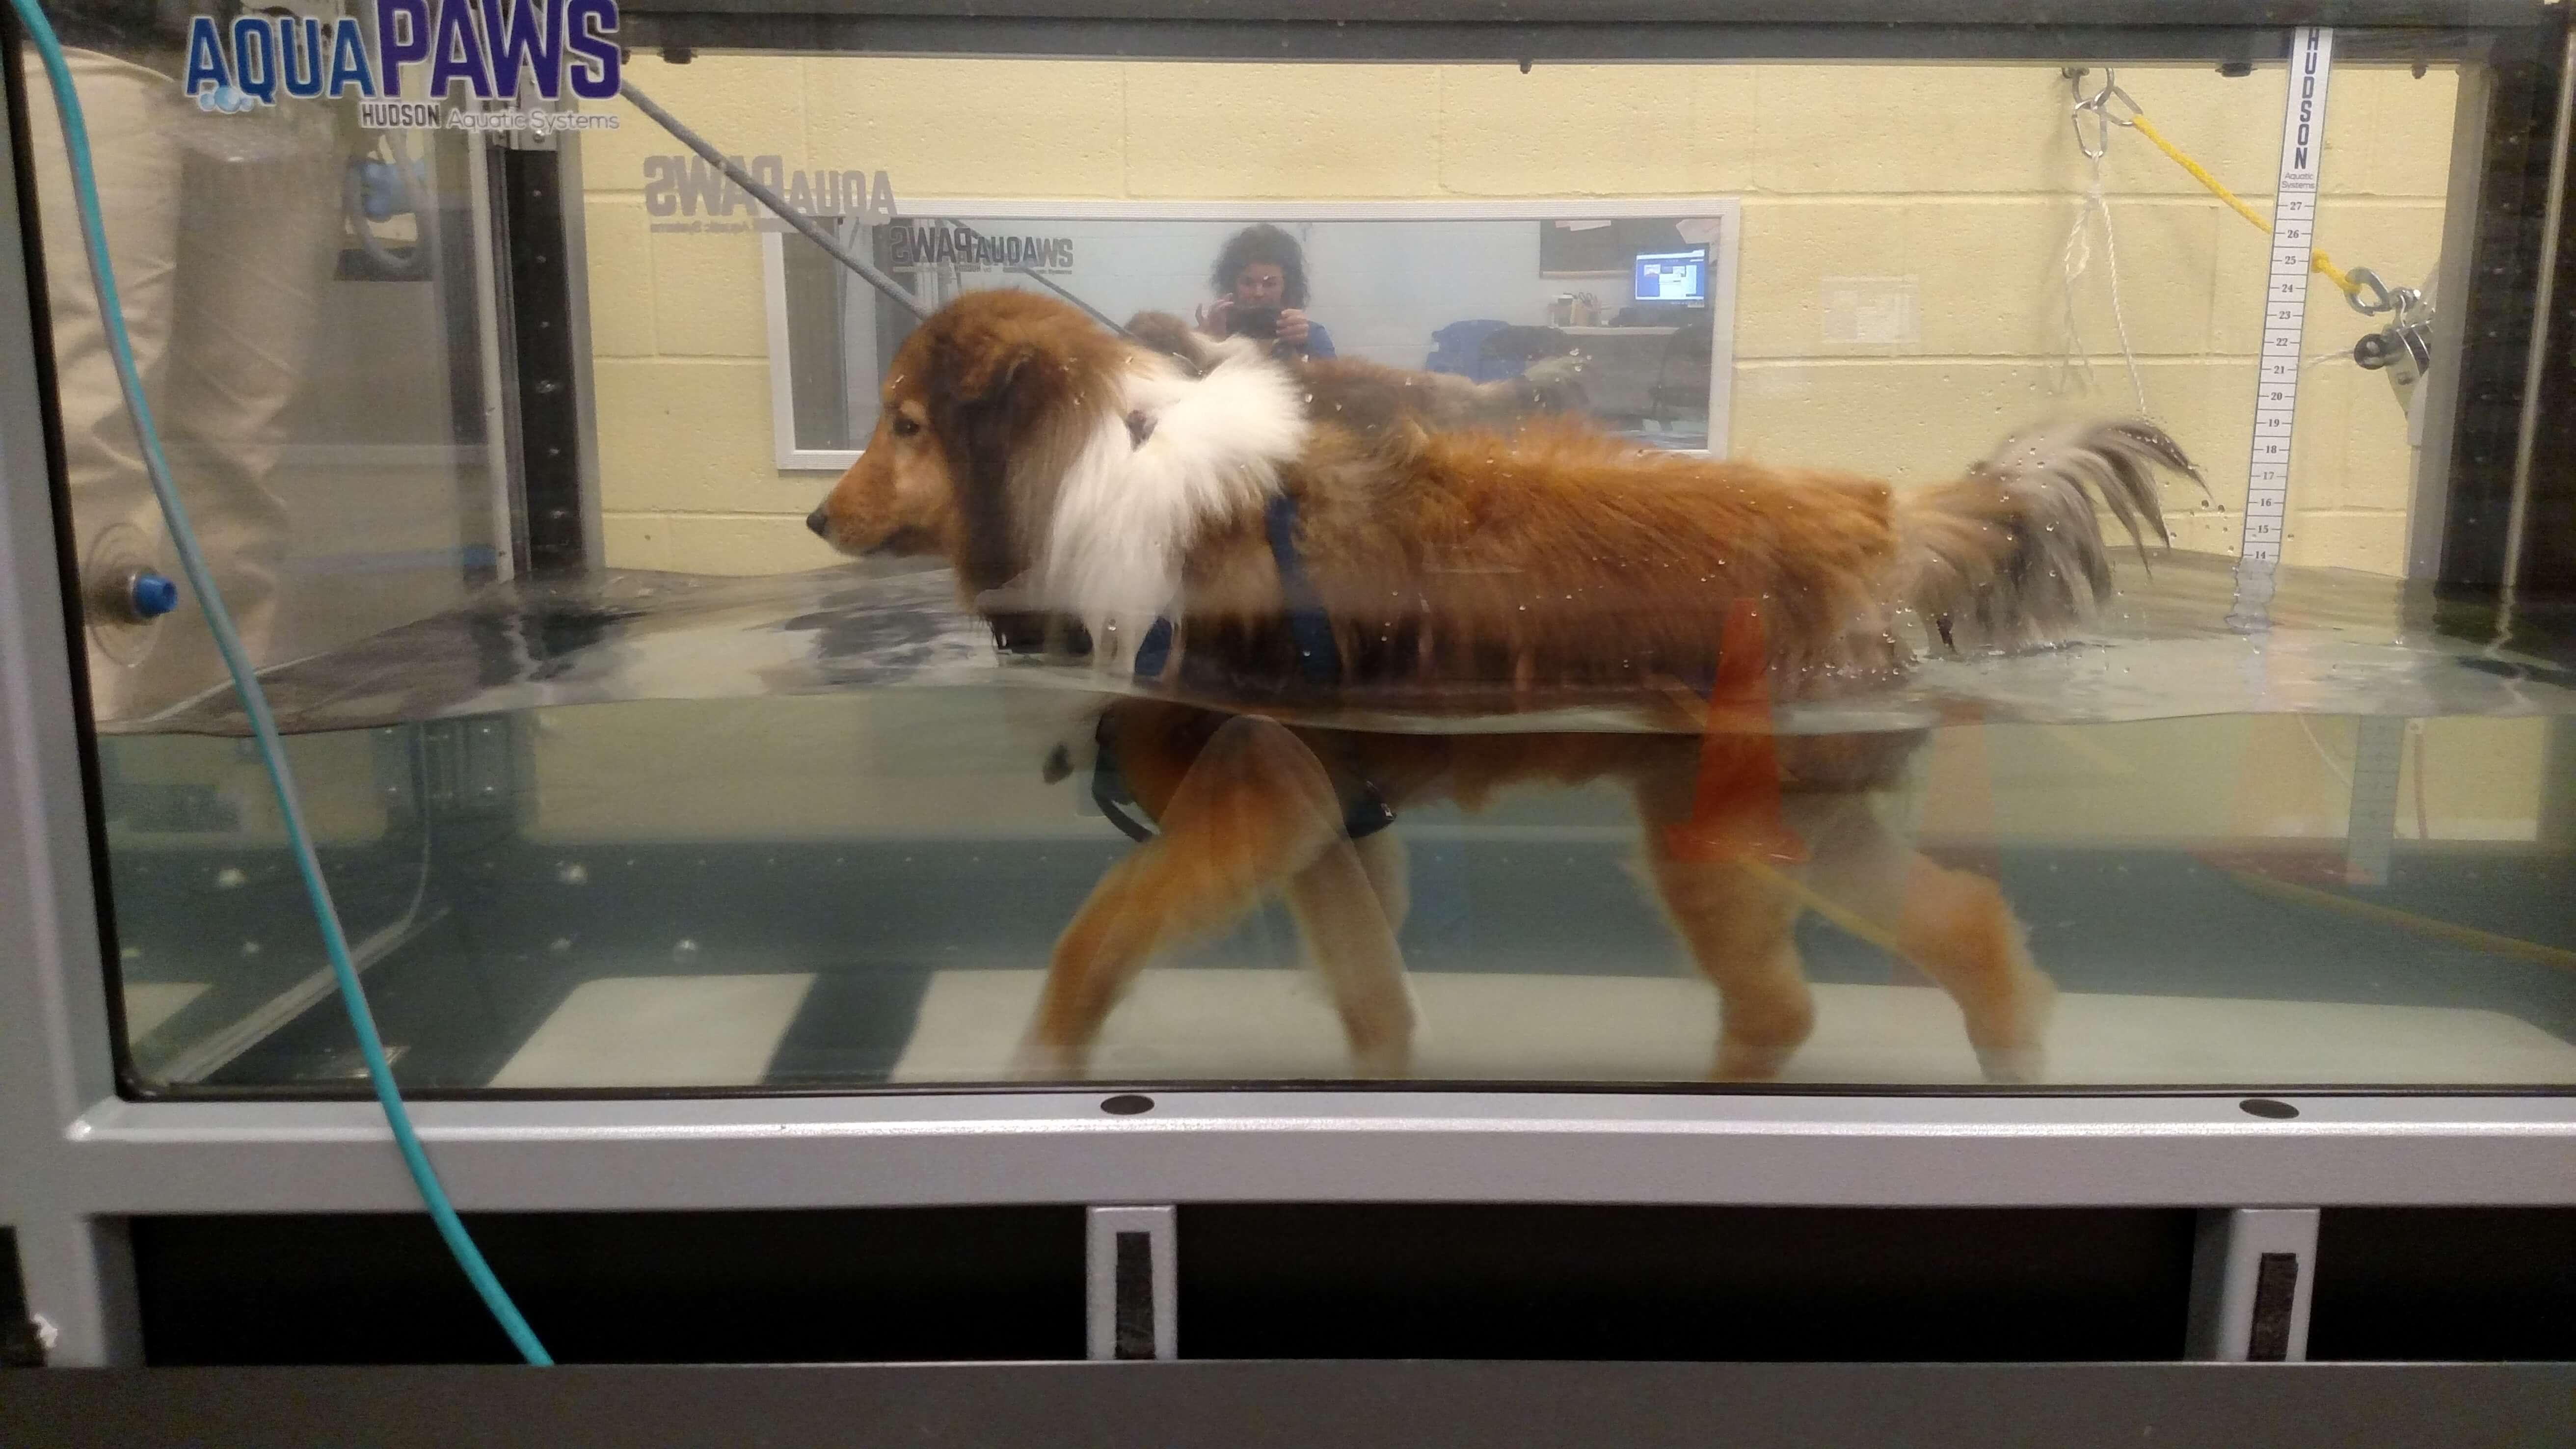 hydrotherapy_water treadmill_dog